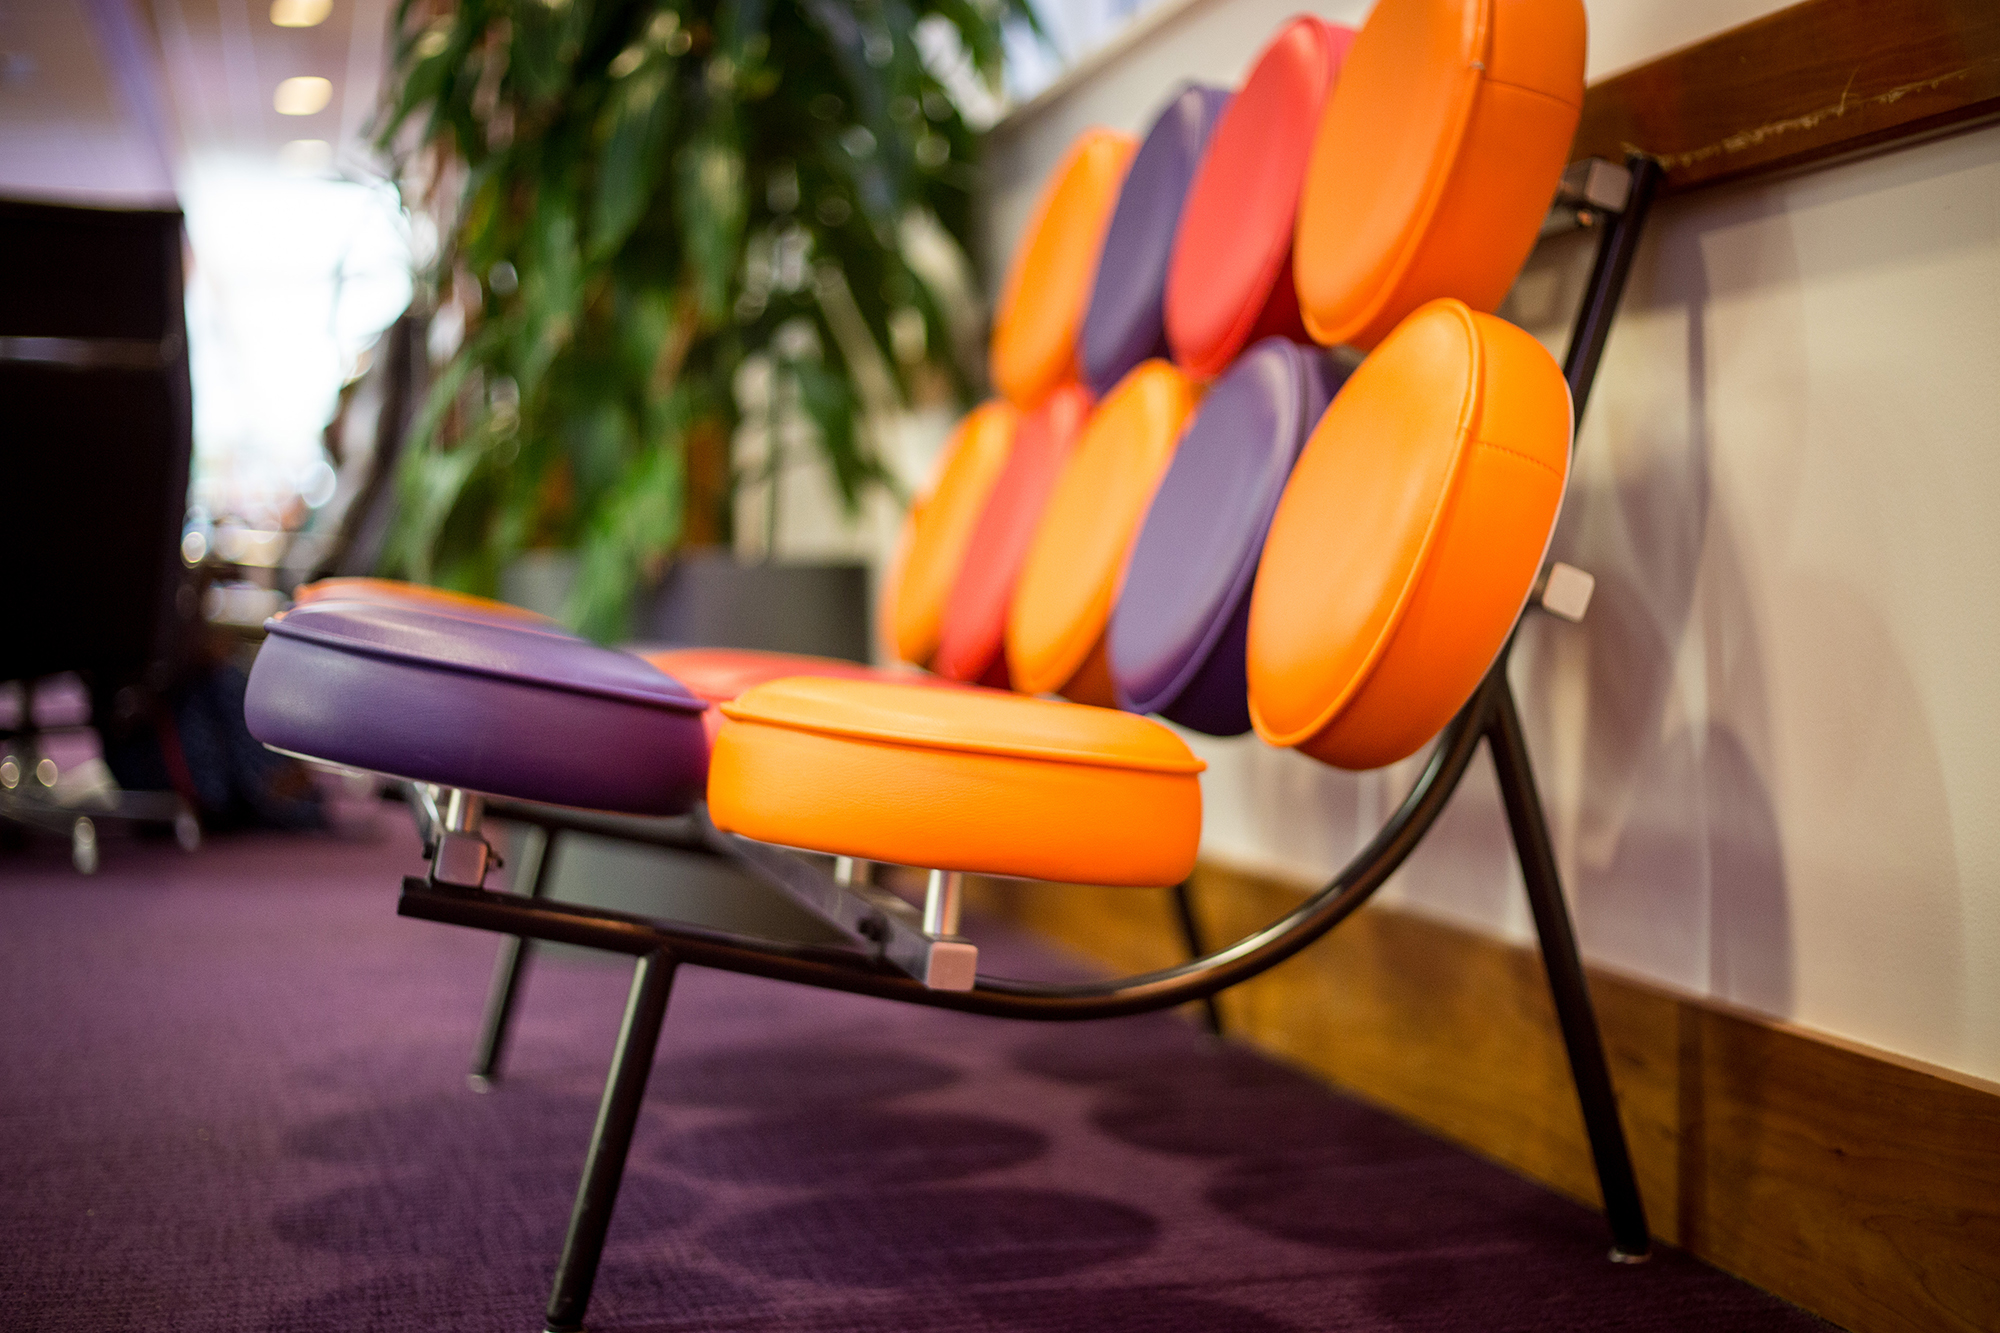 A purple and orange bench in the Learning Commons at DH Hill